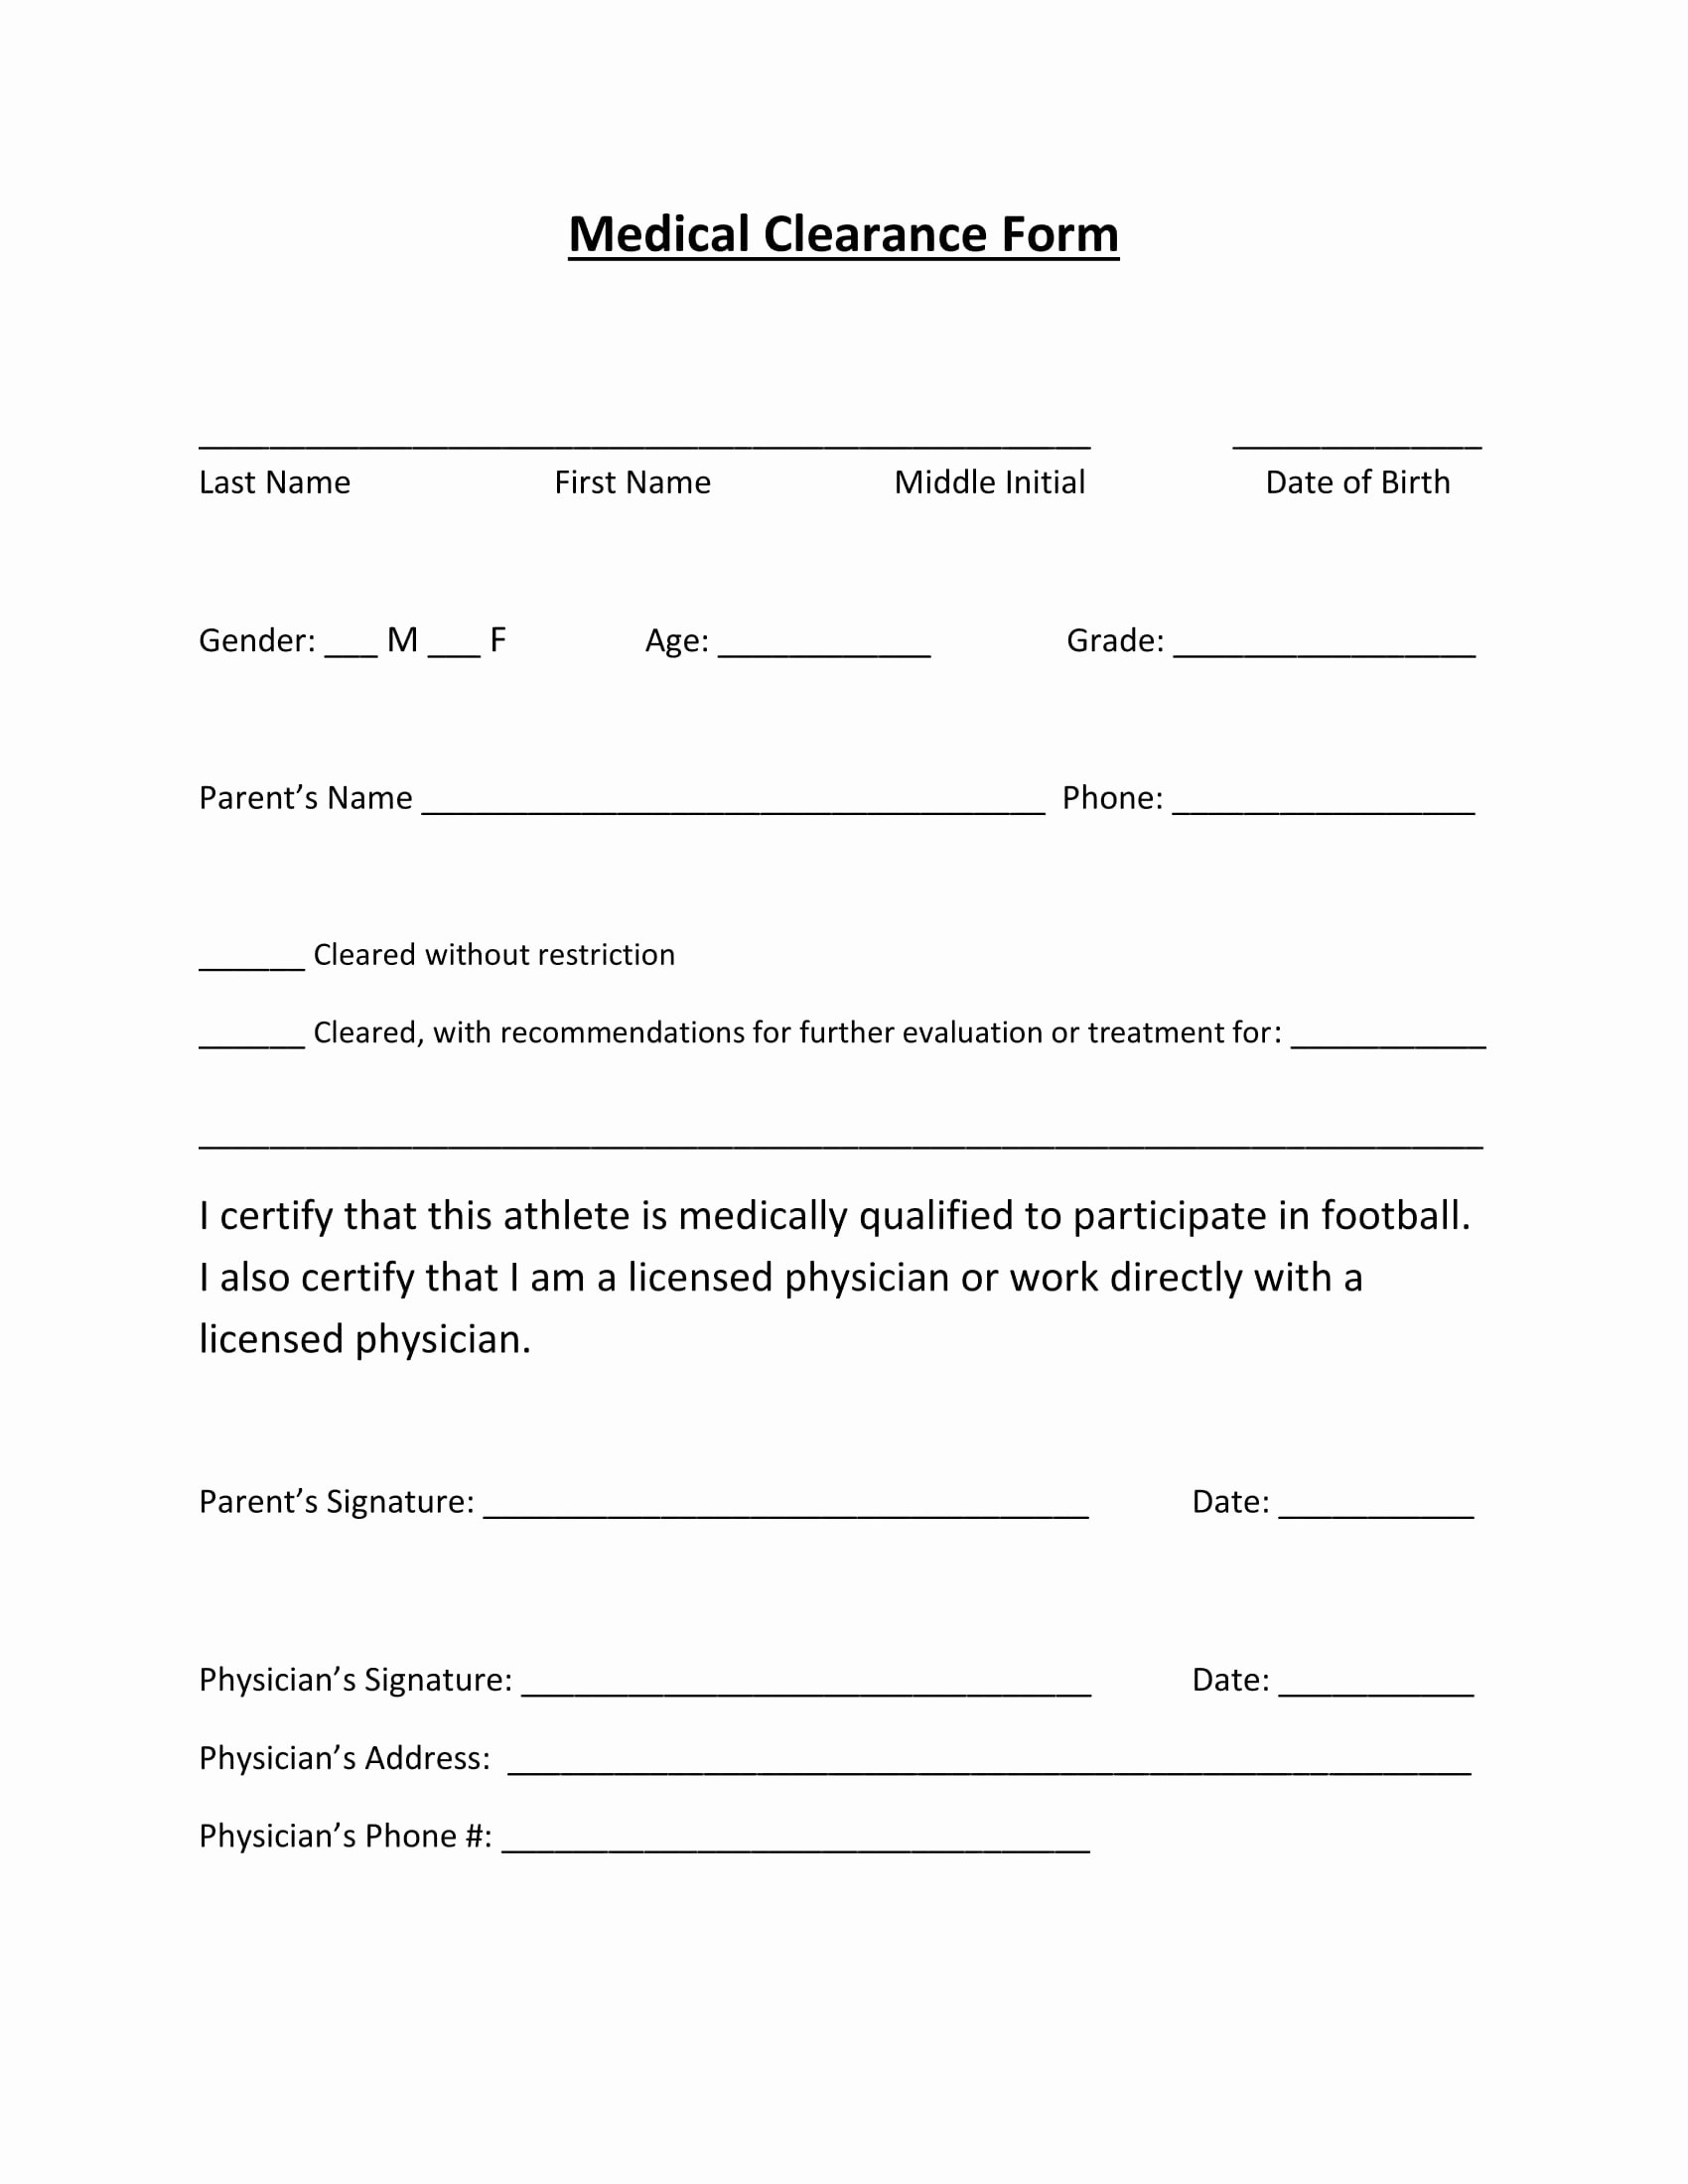 Medical Clearance Letter Template Unique 29 Medical Clearance form Examples